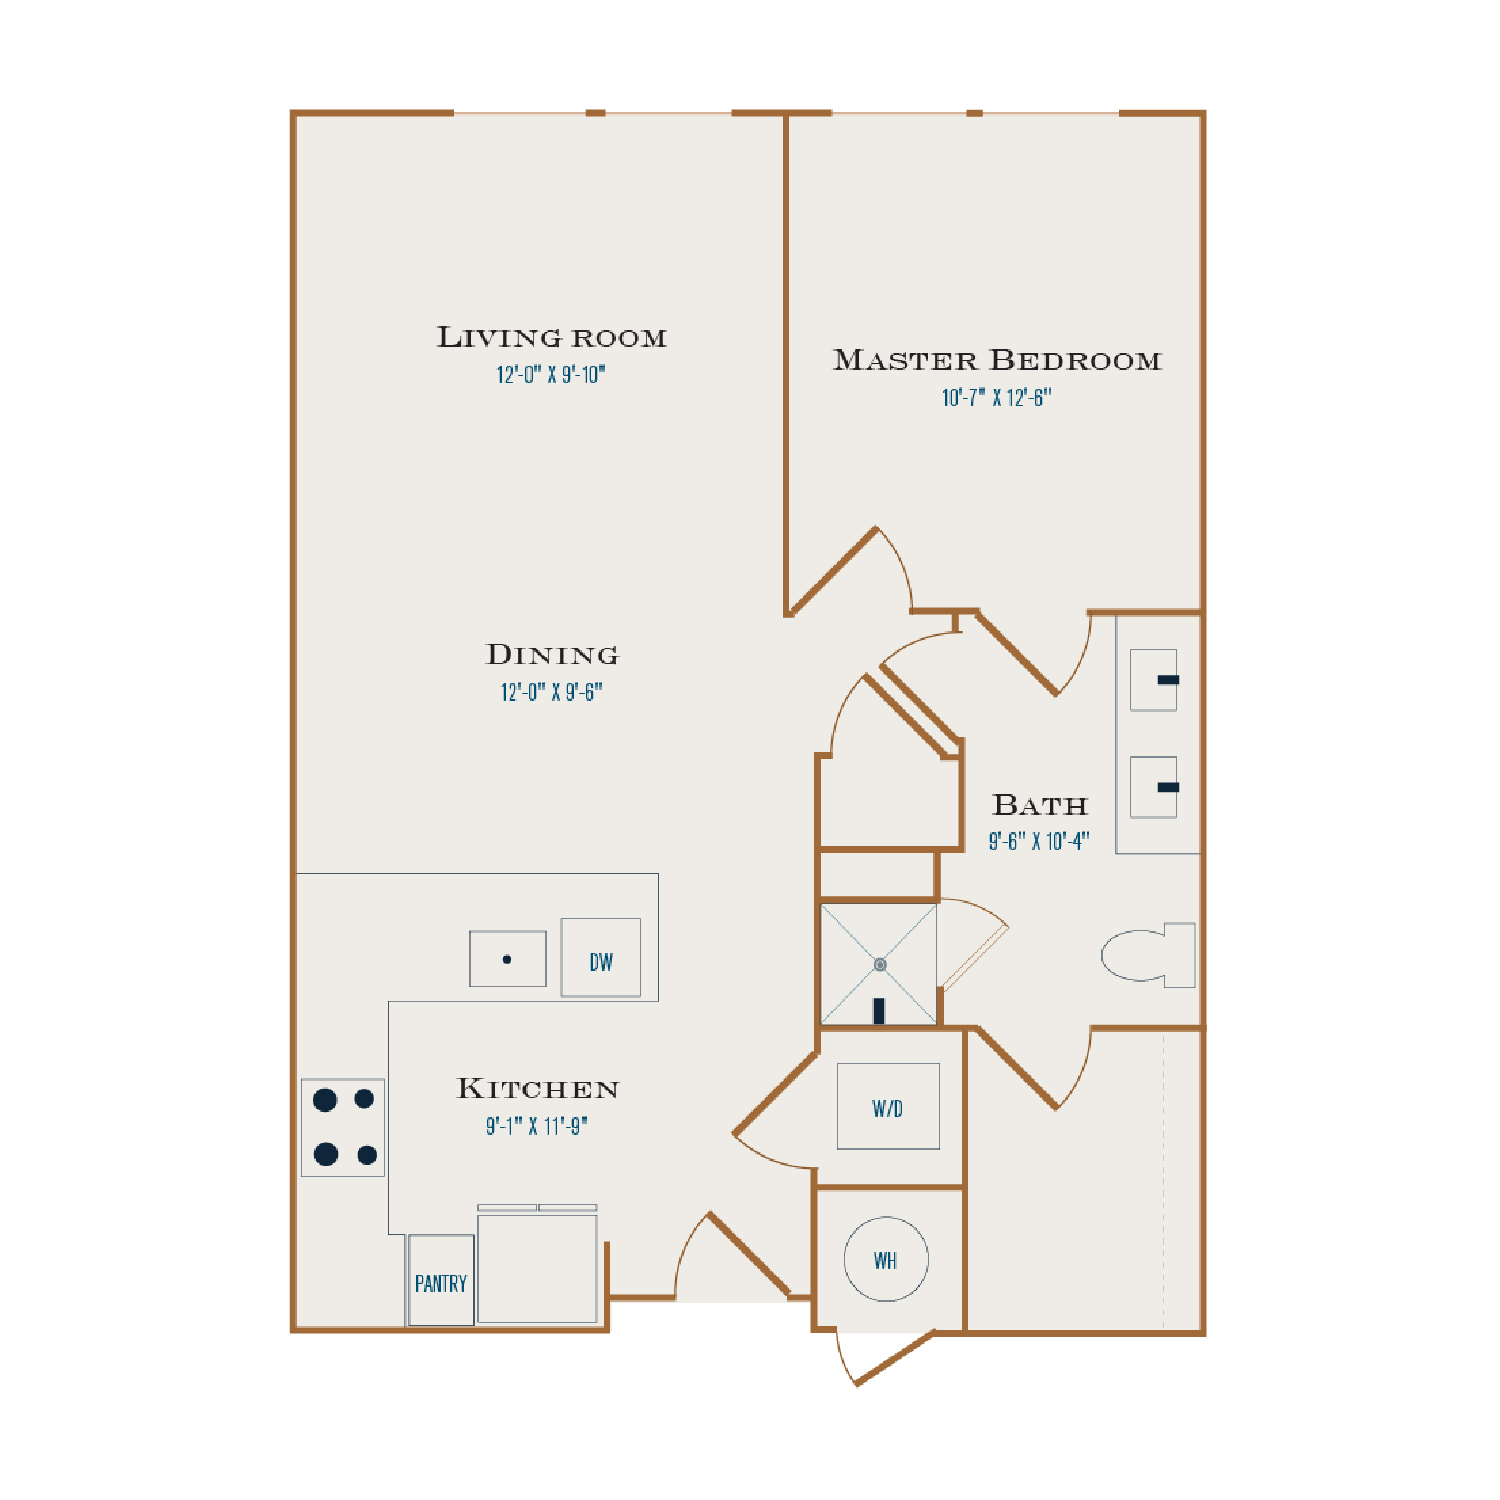 A Five floor plan diagram. One bedroom, one bathroom, an open kitchen and living area, and a washer dryer.